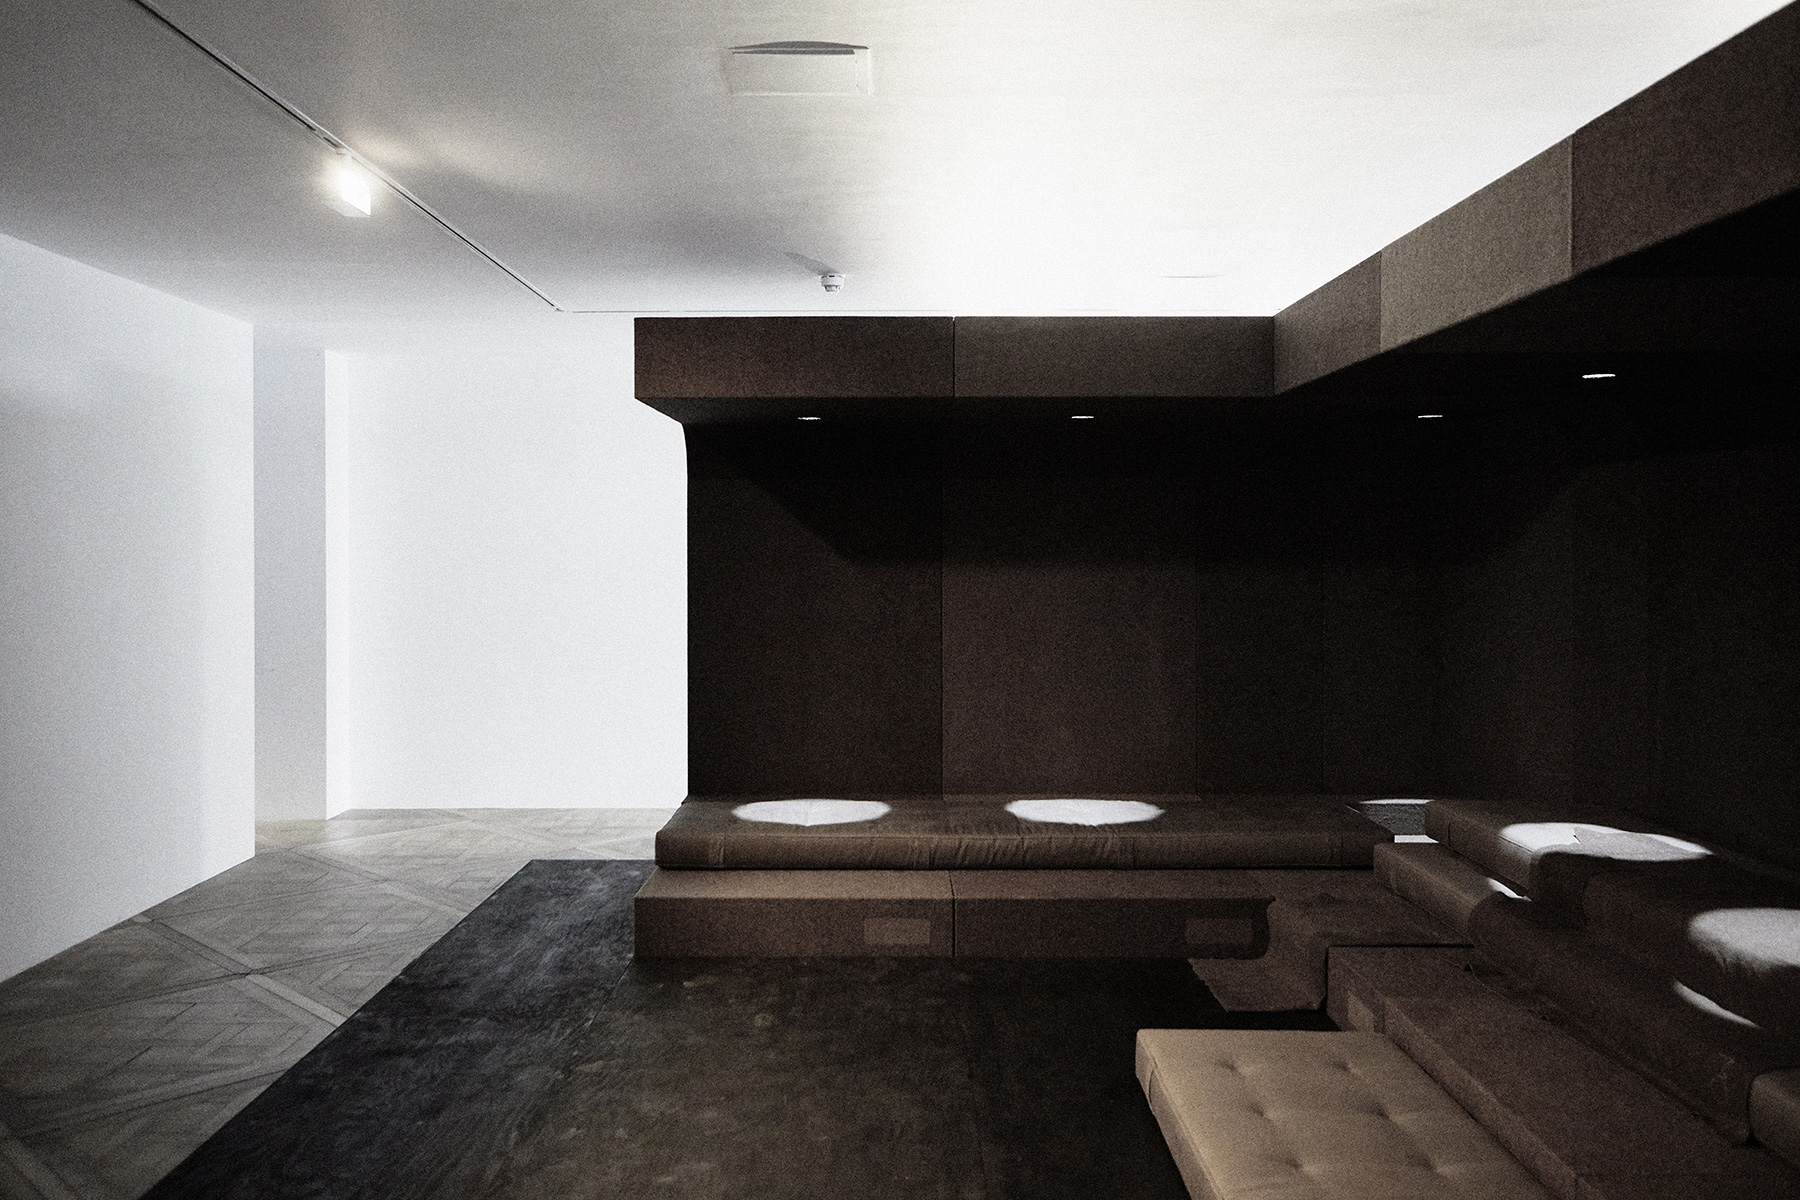 Installation view, Rick Owens, Glade, 2019 | London Design Festival 2019 | STIR